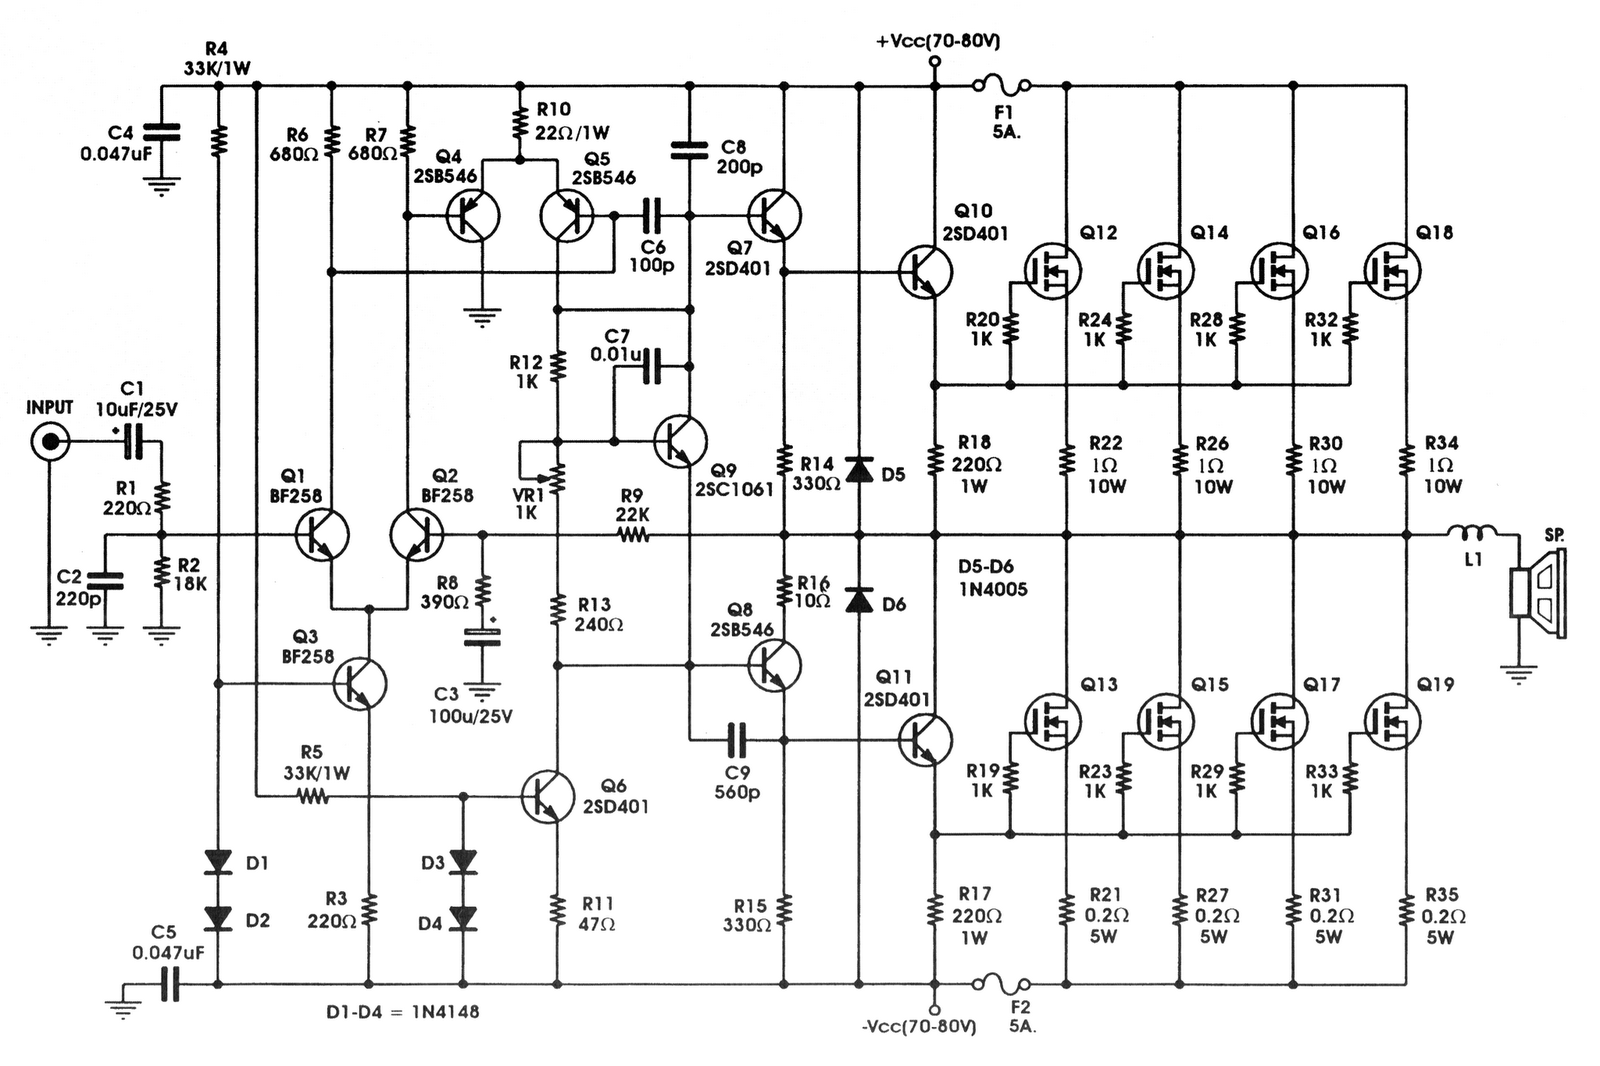 high quality mosfet amplifier circuit diagram electronics rh pinterest com 2000w mosfet amplifier circuit diagram 2000w mosfet amplifier circuit diagram